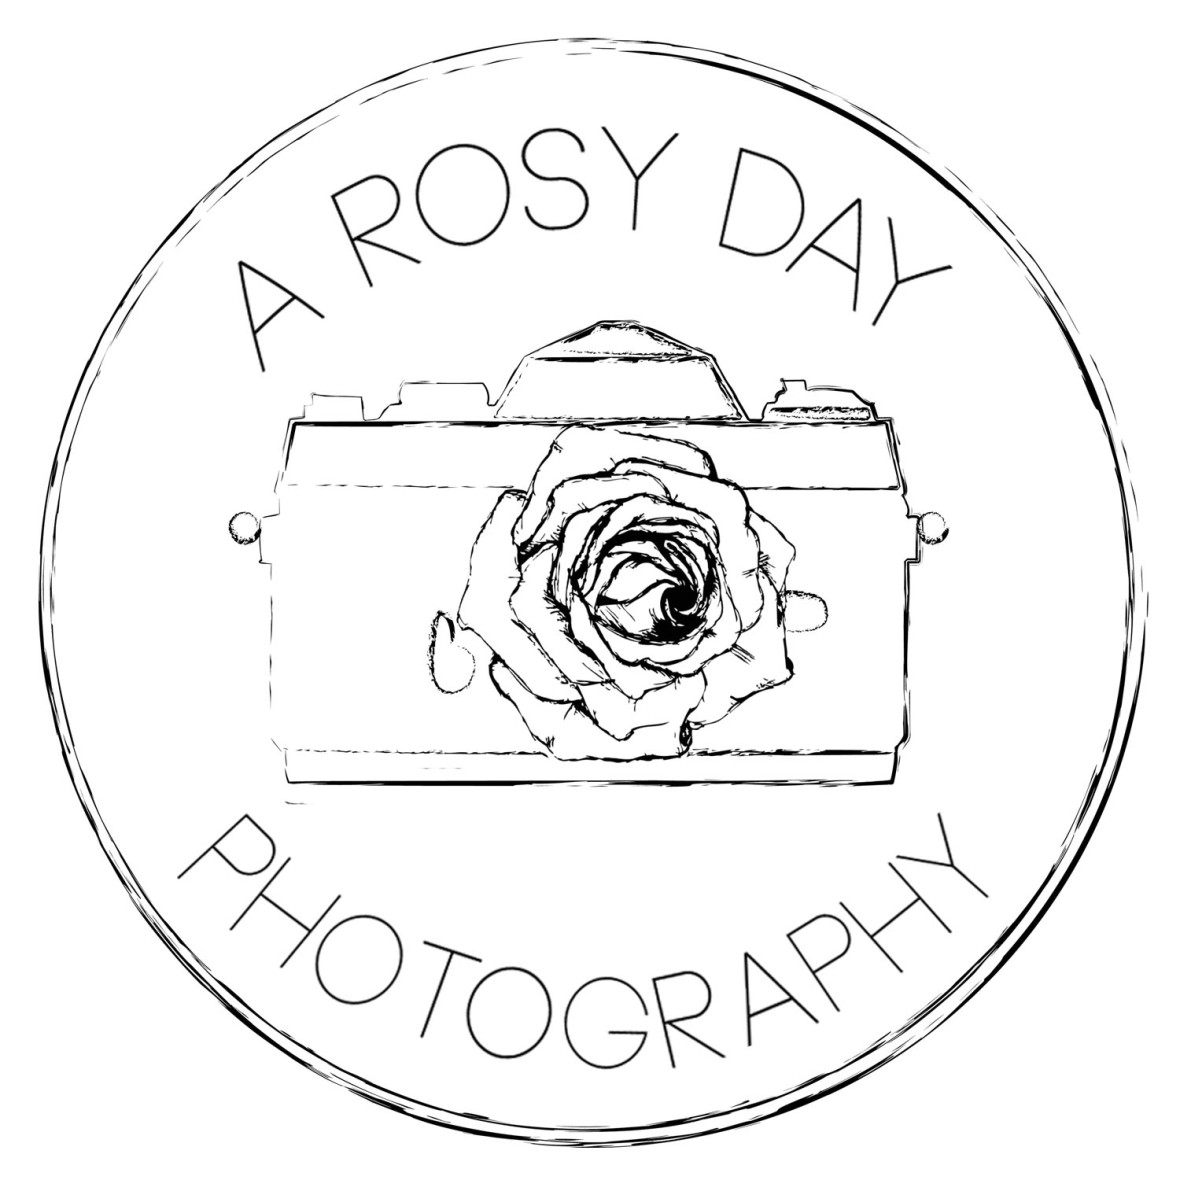 A ROSY DAY - white